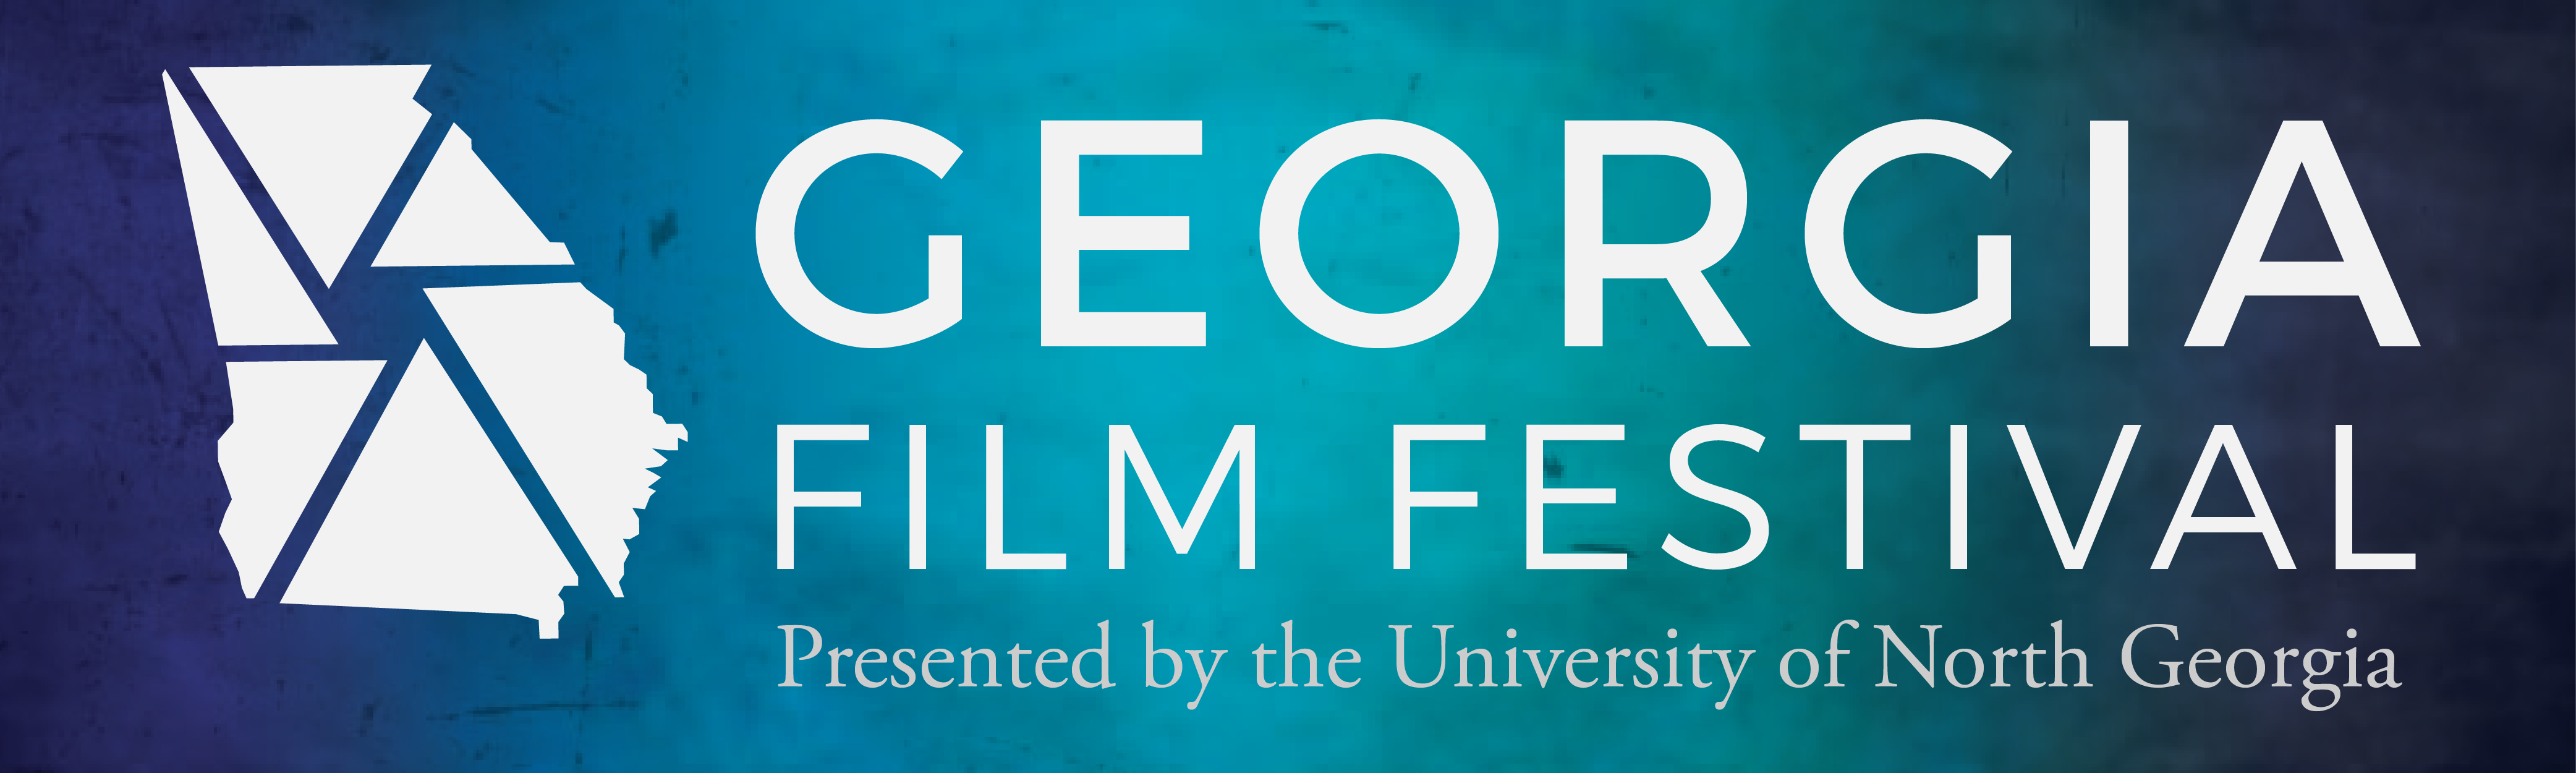 Georgia Film Festival, presented by the University of North Georgia